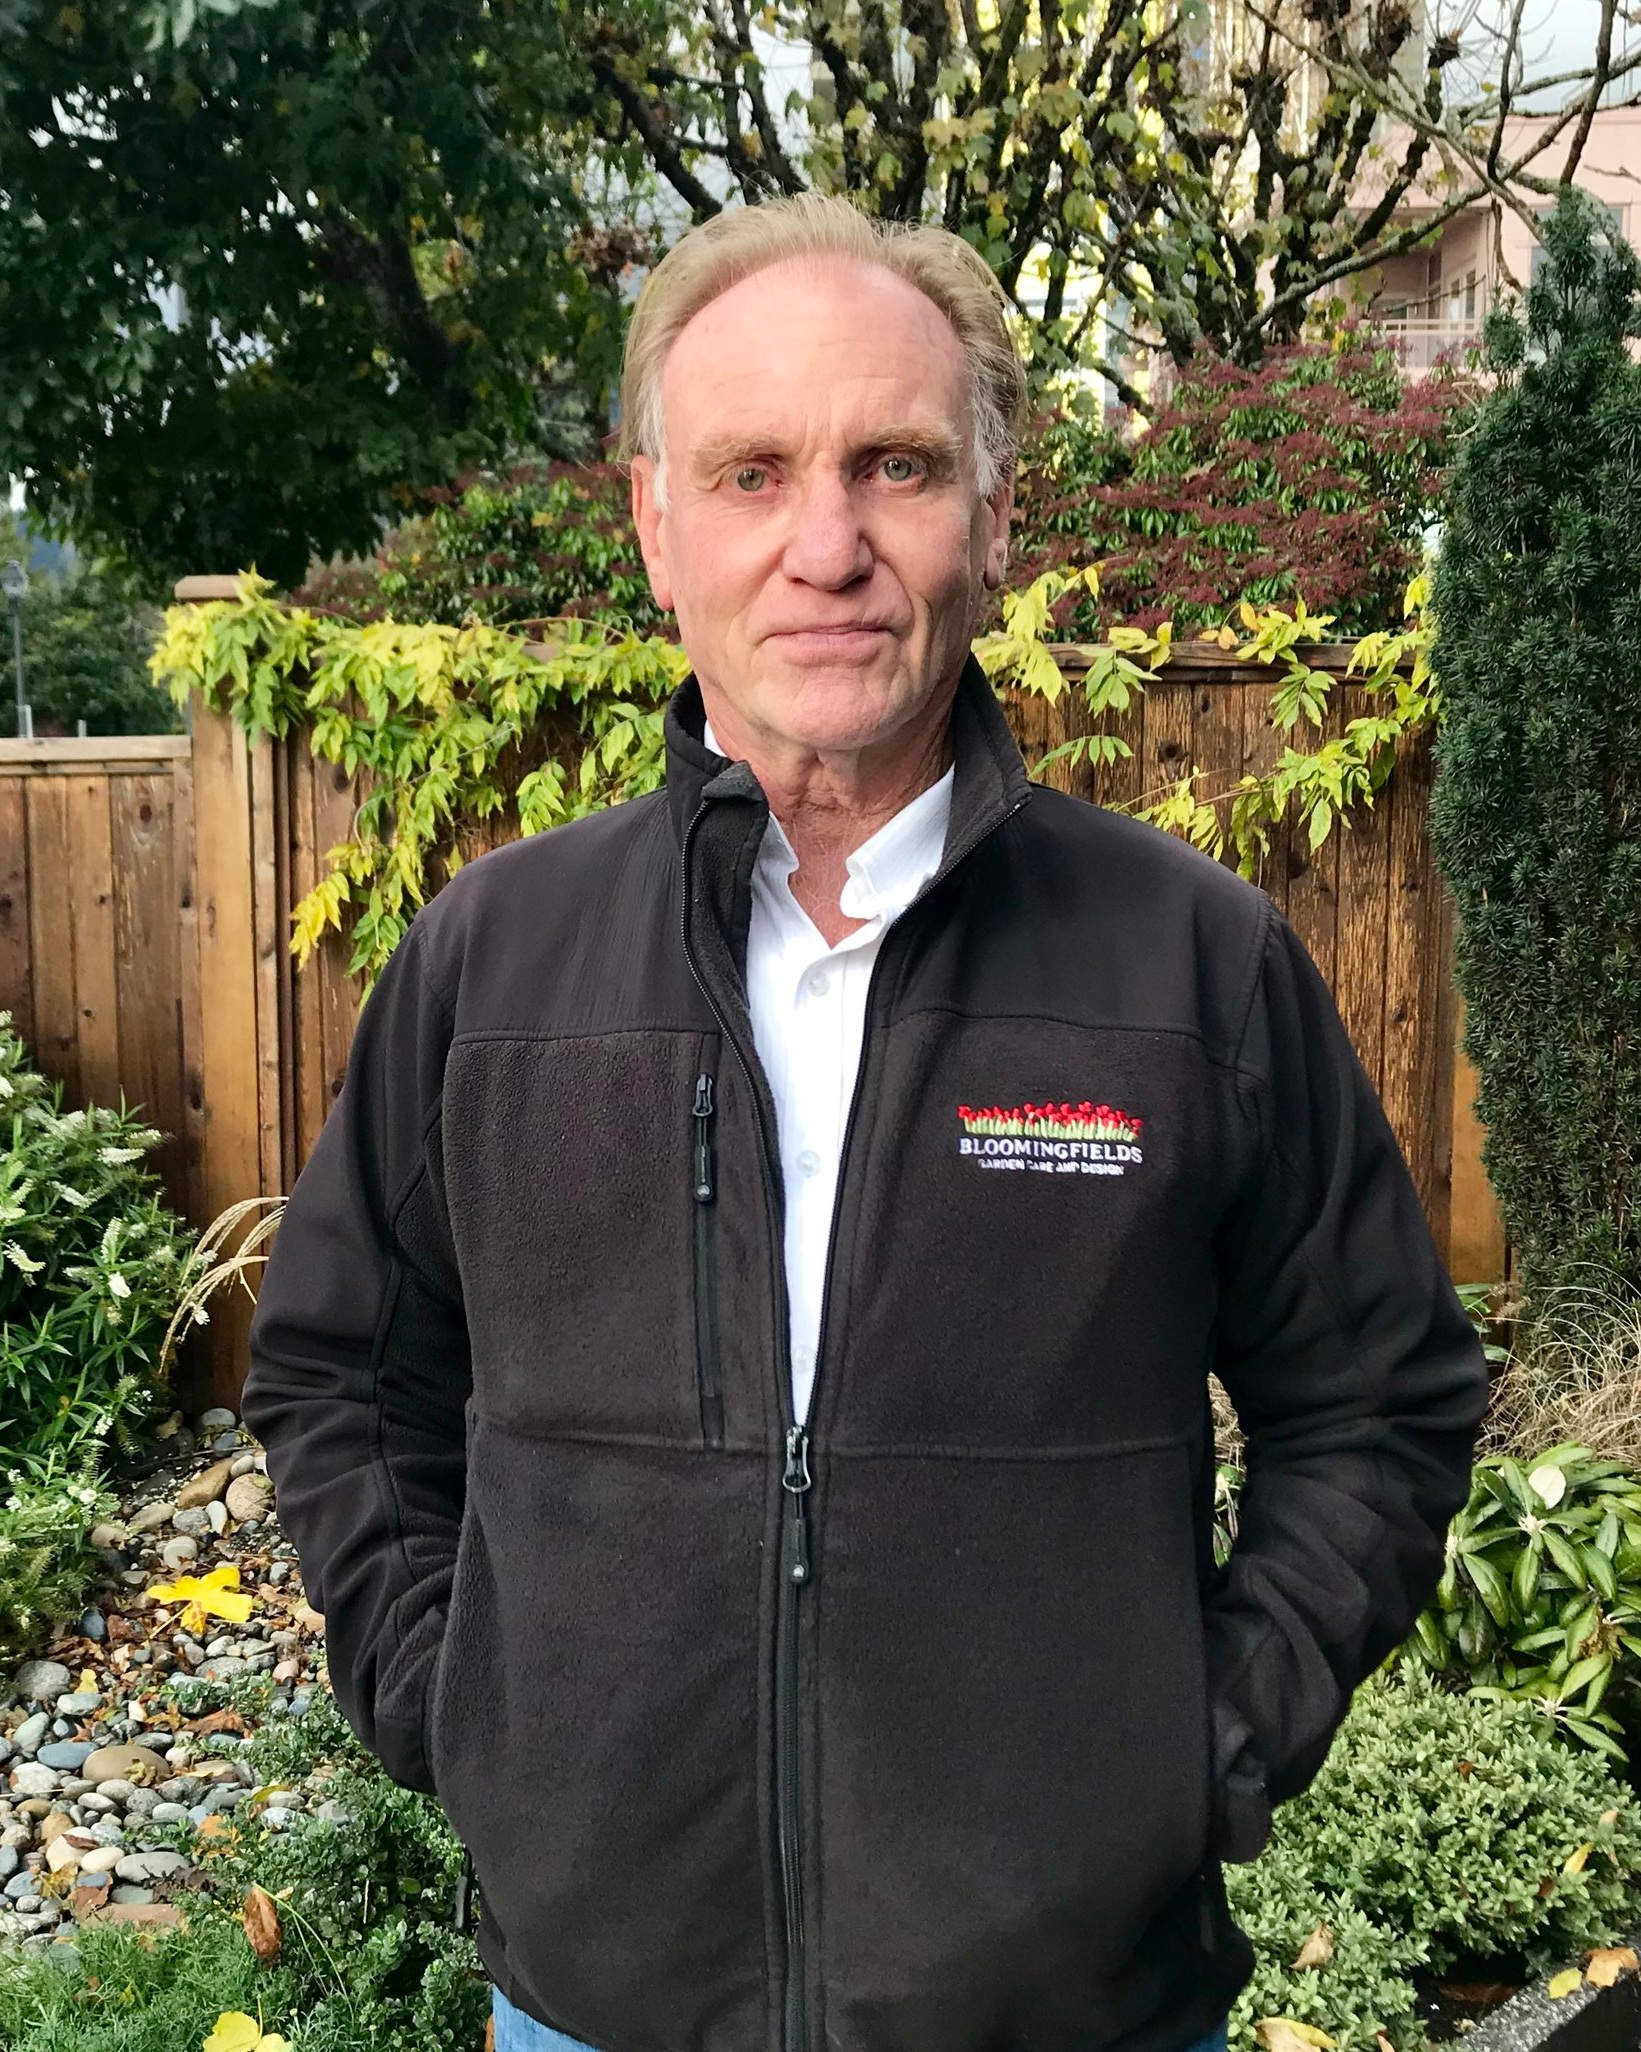 Brian PomfretService Manager - Brian is responsible for all new residential and commercial landscape inquiries. This includes all aspects of garden maintenance services, new landscape construction or renovation of existing gardens with consultation on irrigation and landscape lighting.